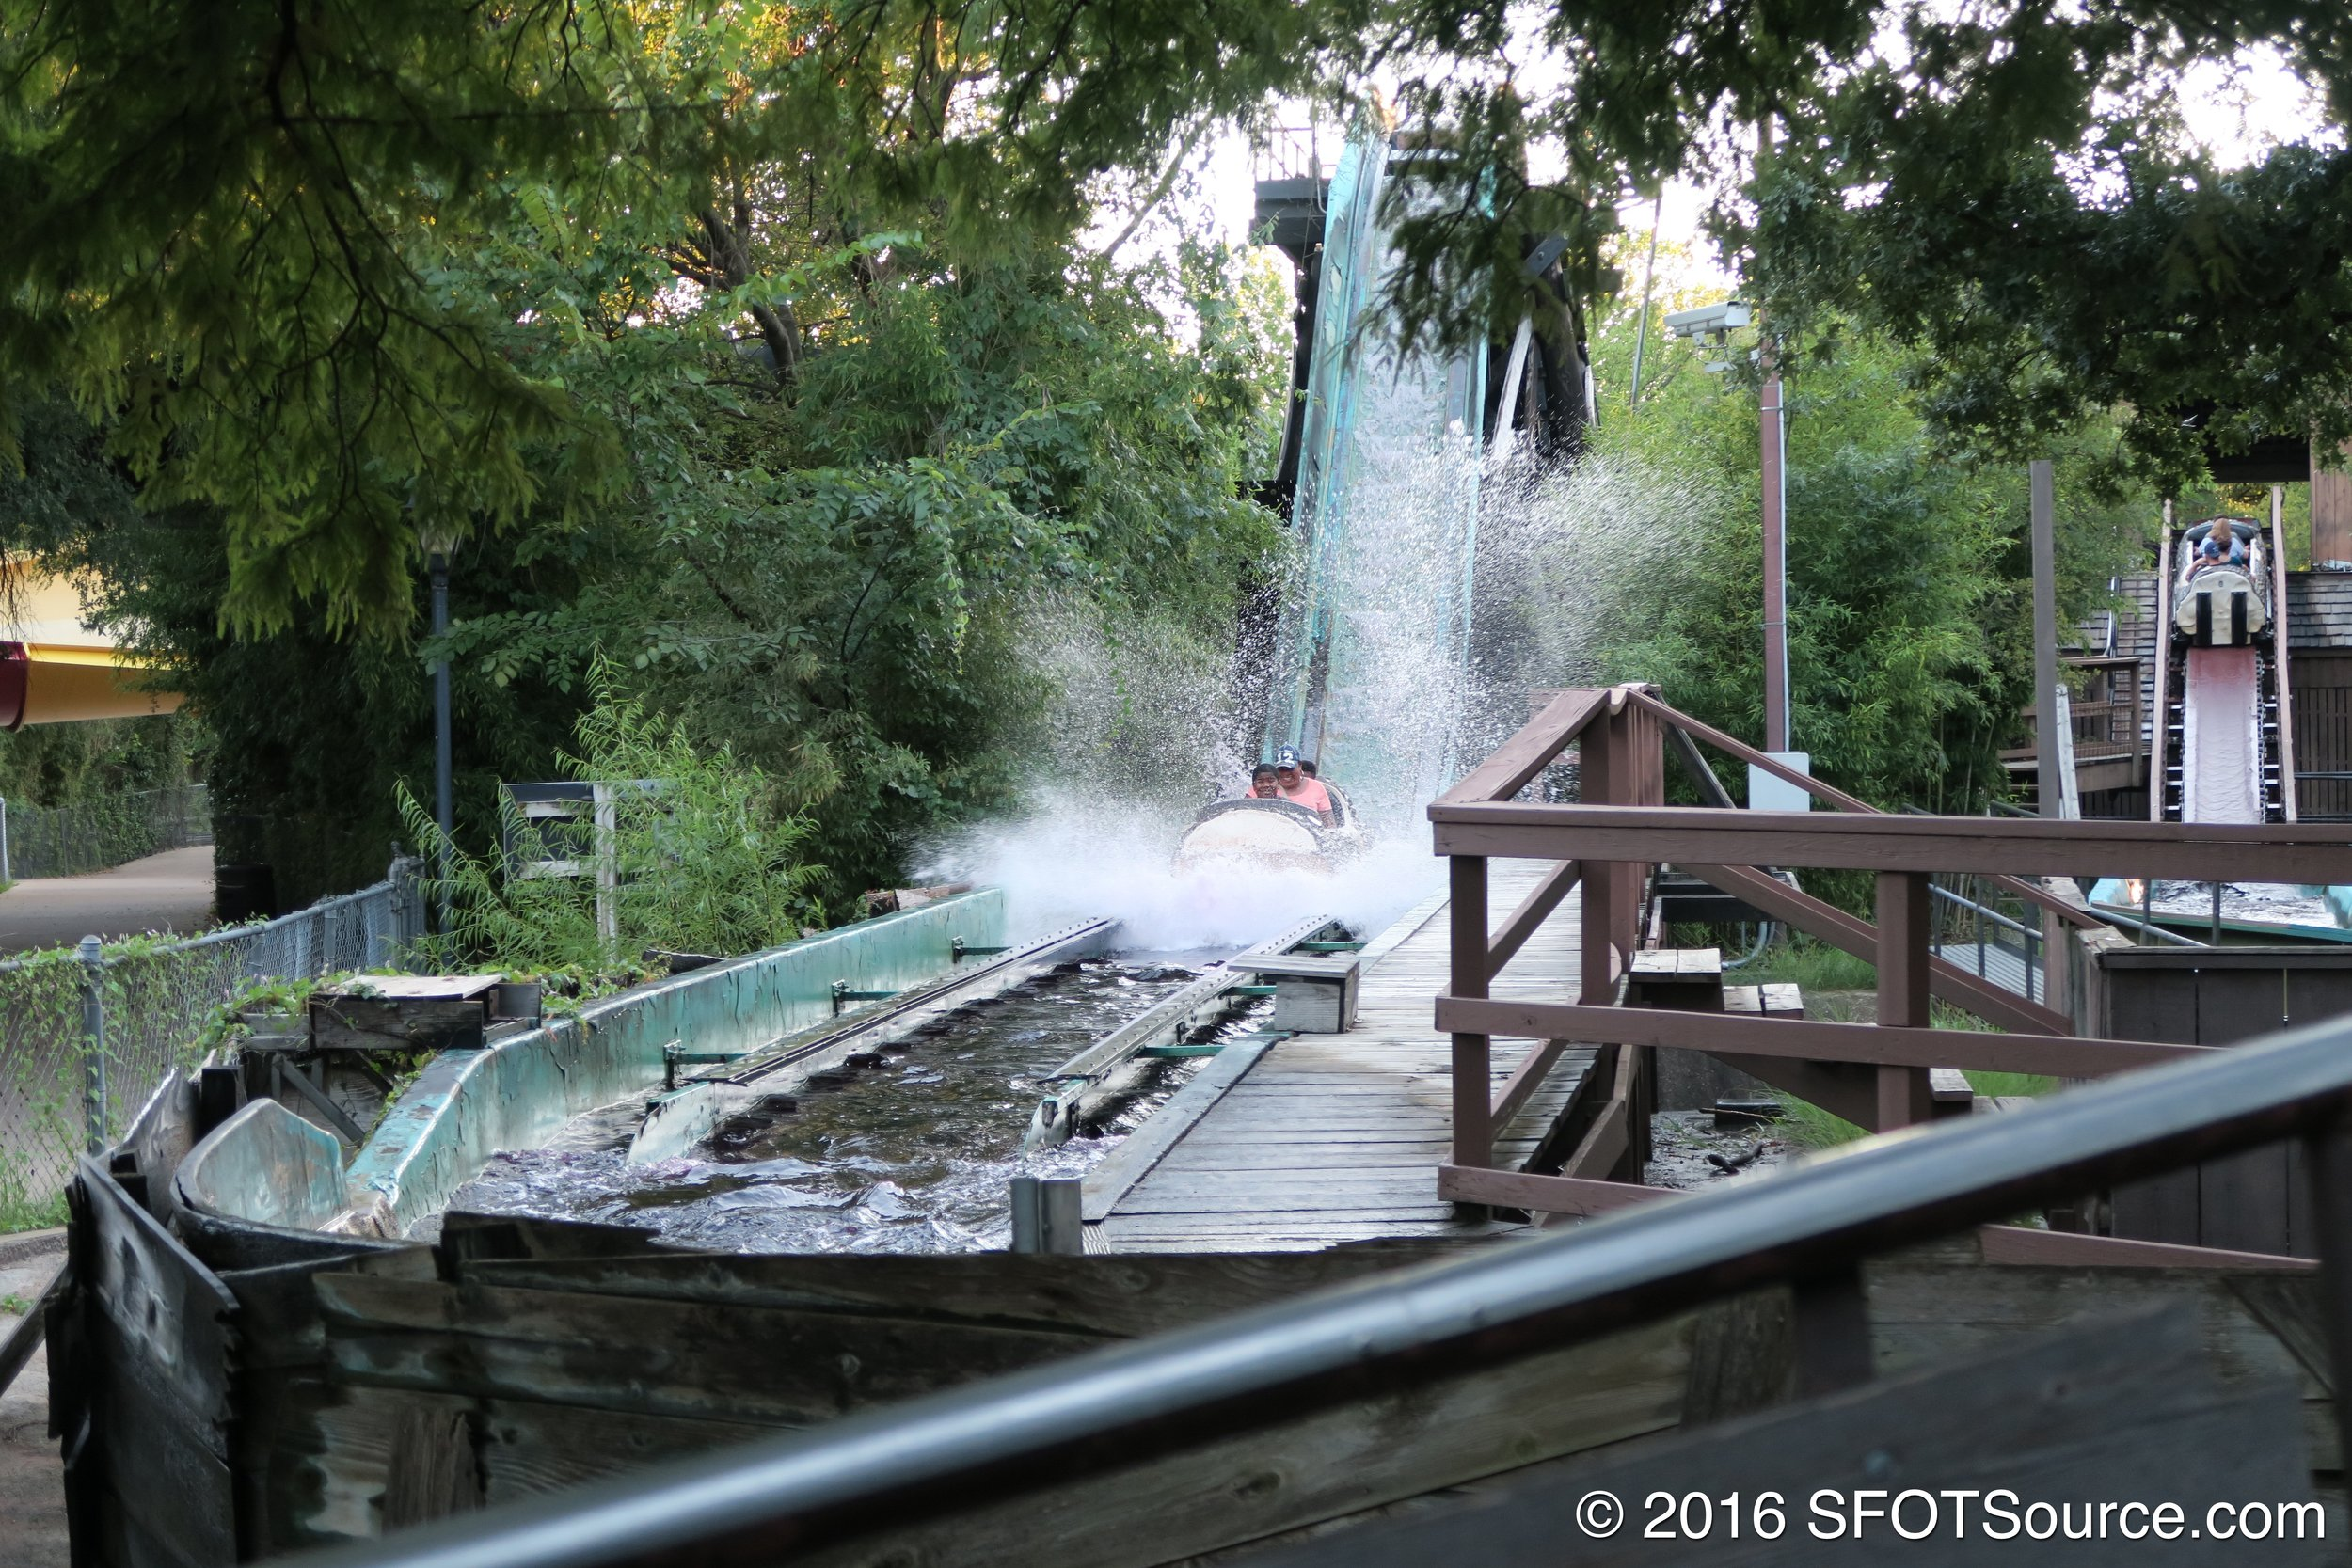 The final drop on Flume 2.